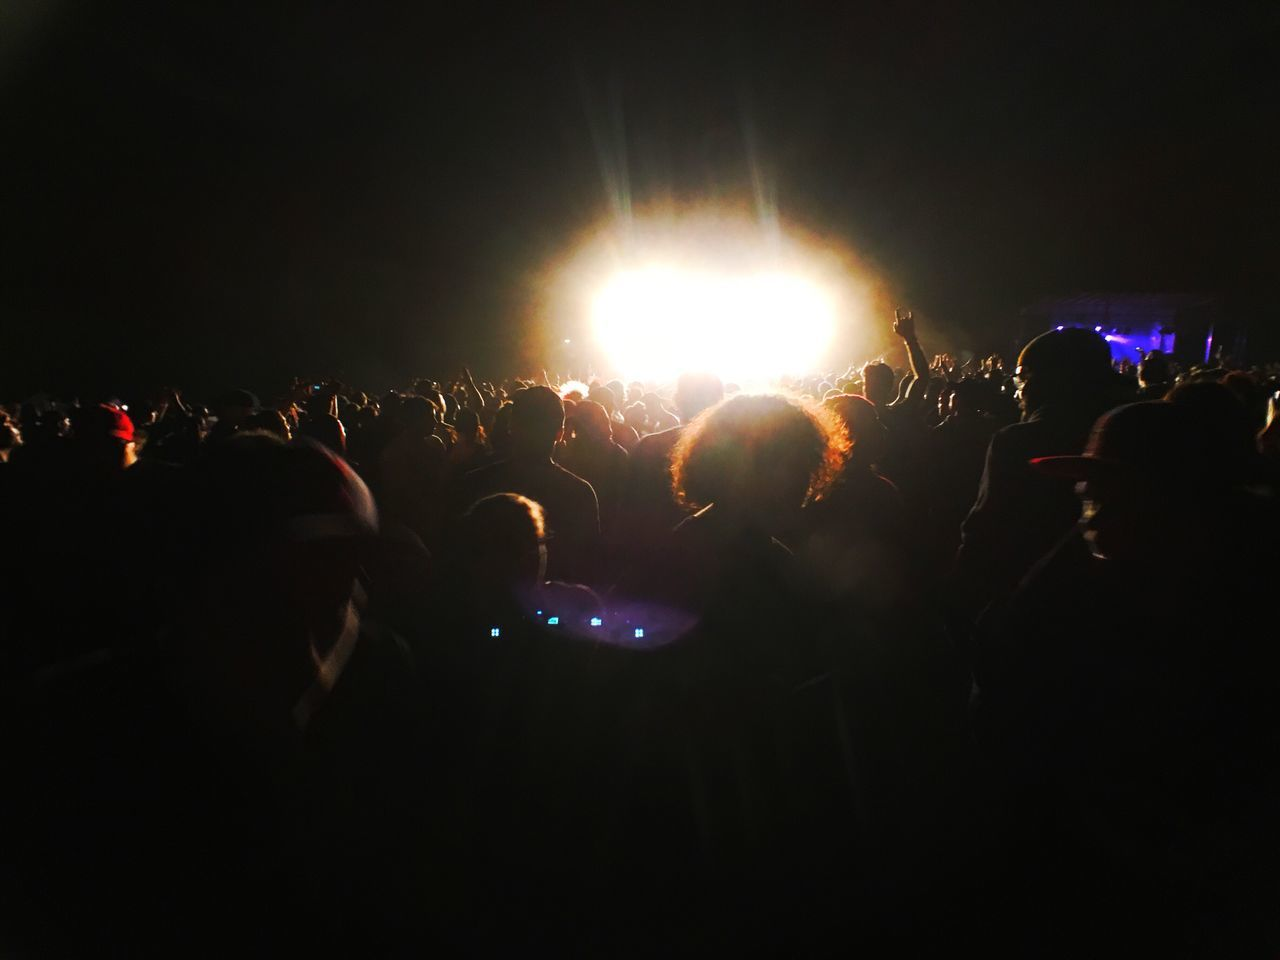 Crowd Check This Out Enjoying Life Rock Spectacle Show Concert Crowd Silouette Silouhette Silouette And Shadows Silouette Photography Light And Shadow Lights Light Light In The Darkness Festival Season Festive Season